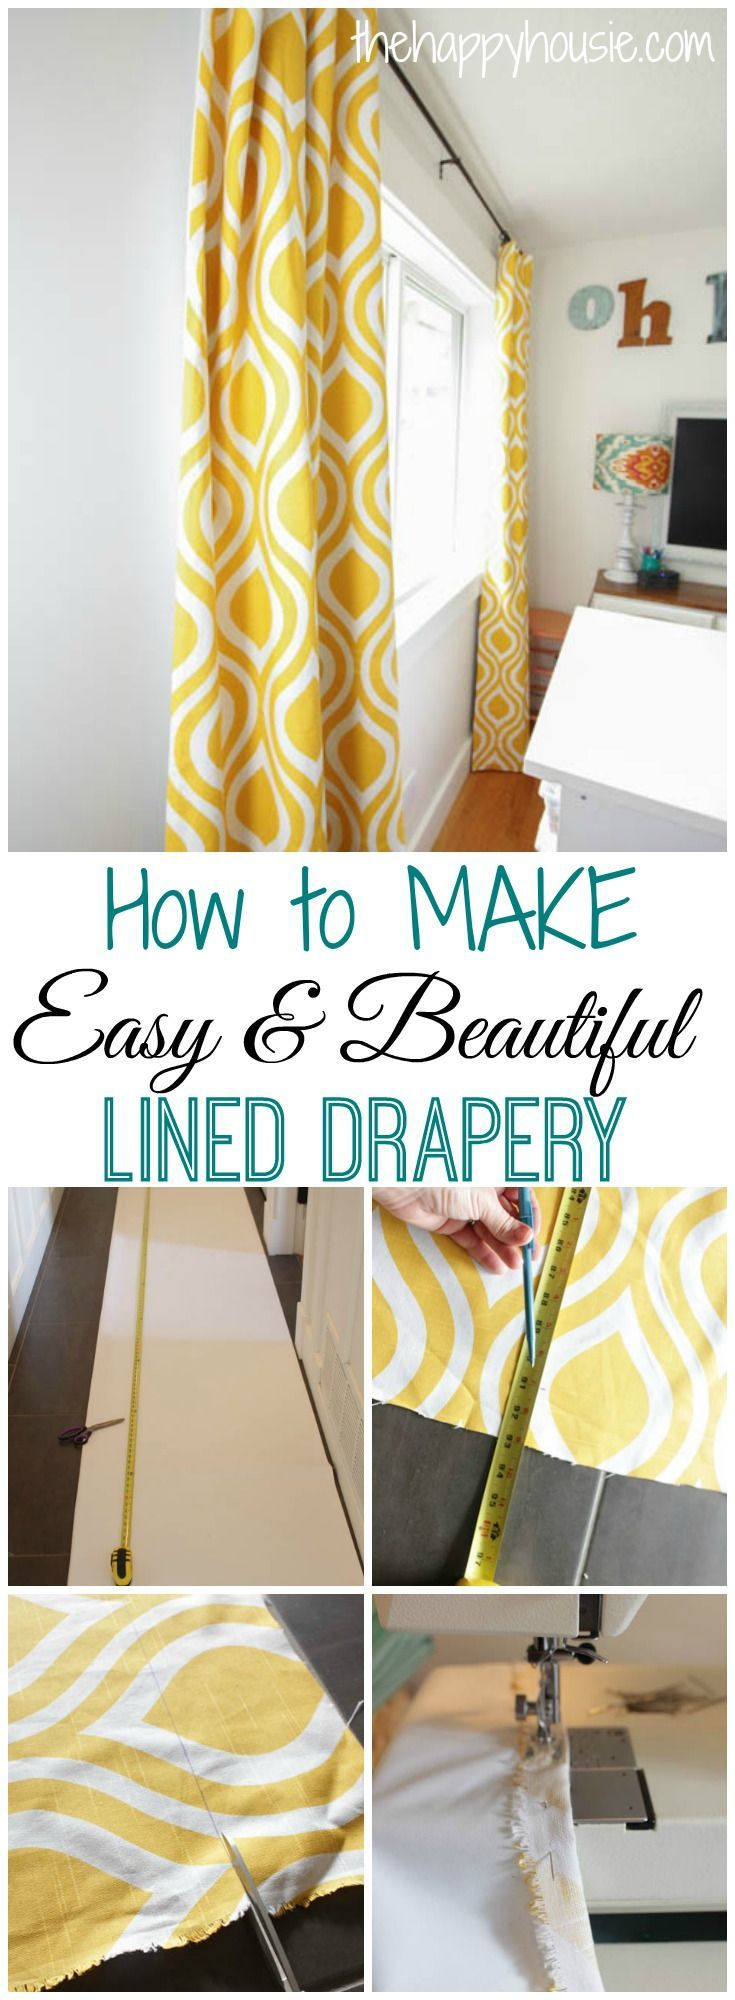 How To Make Lined Curtain Panels Easy Diy Lined Drapery Panels Orc Week 5 Home Pinterest Diy